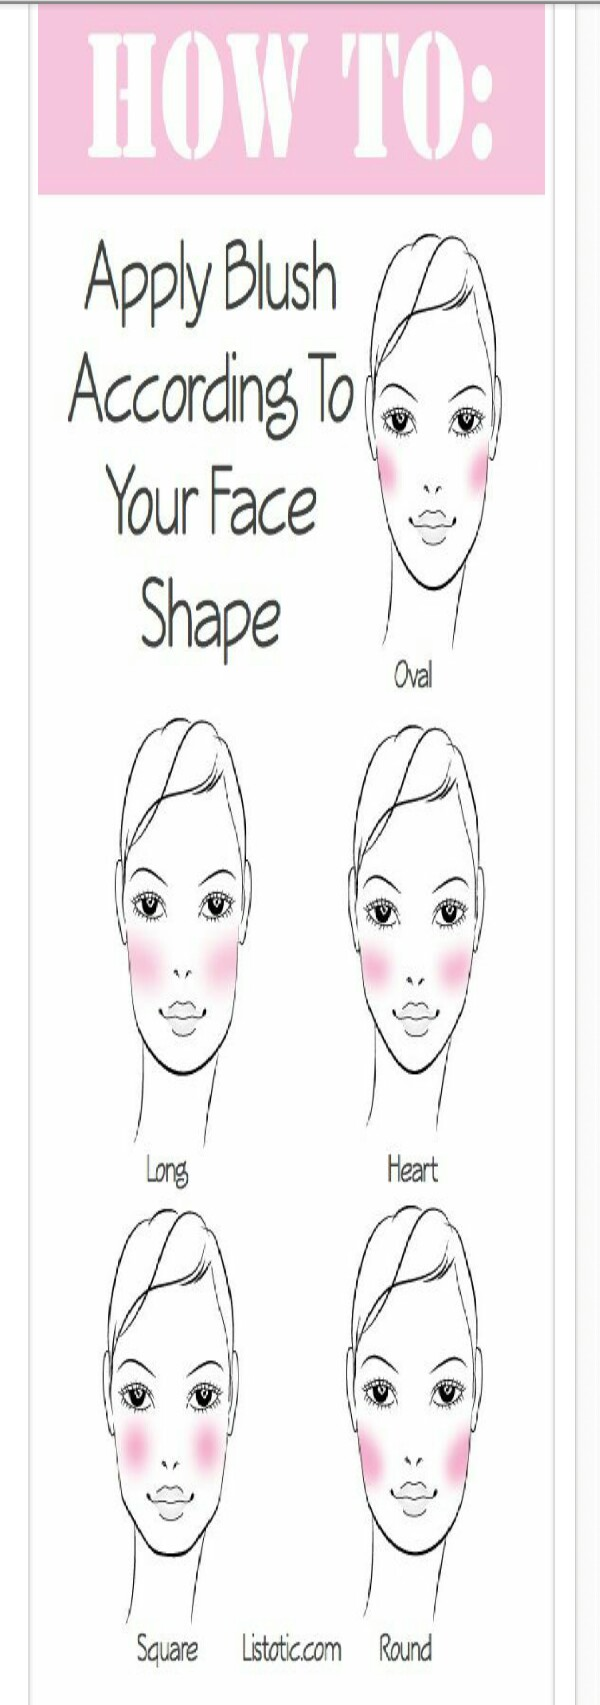 How to: apply blush according to your face shape.